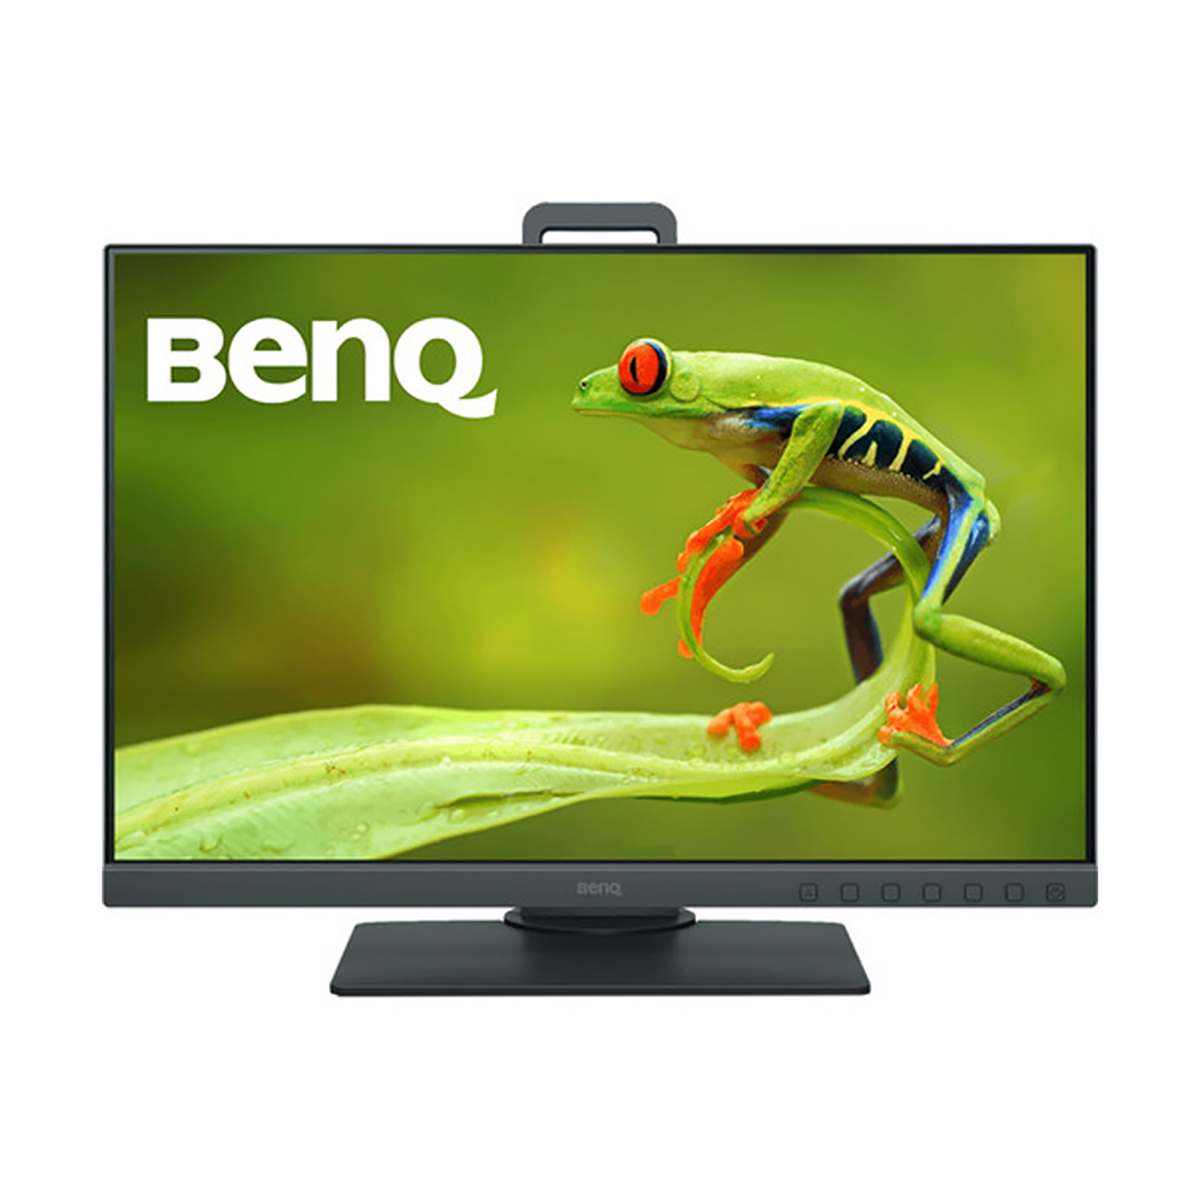 BenQ SW240 PhotoVue 24 inch WUXGA Color Accuracy IPS Monitor for